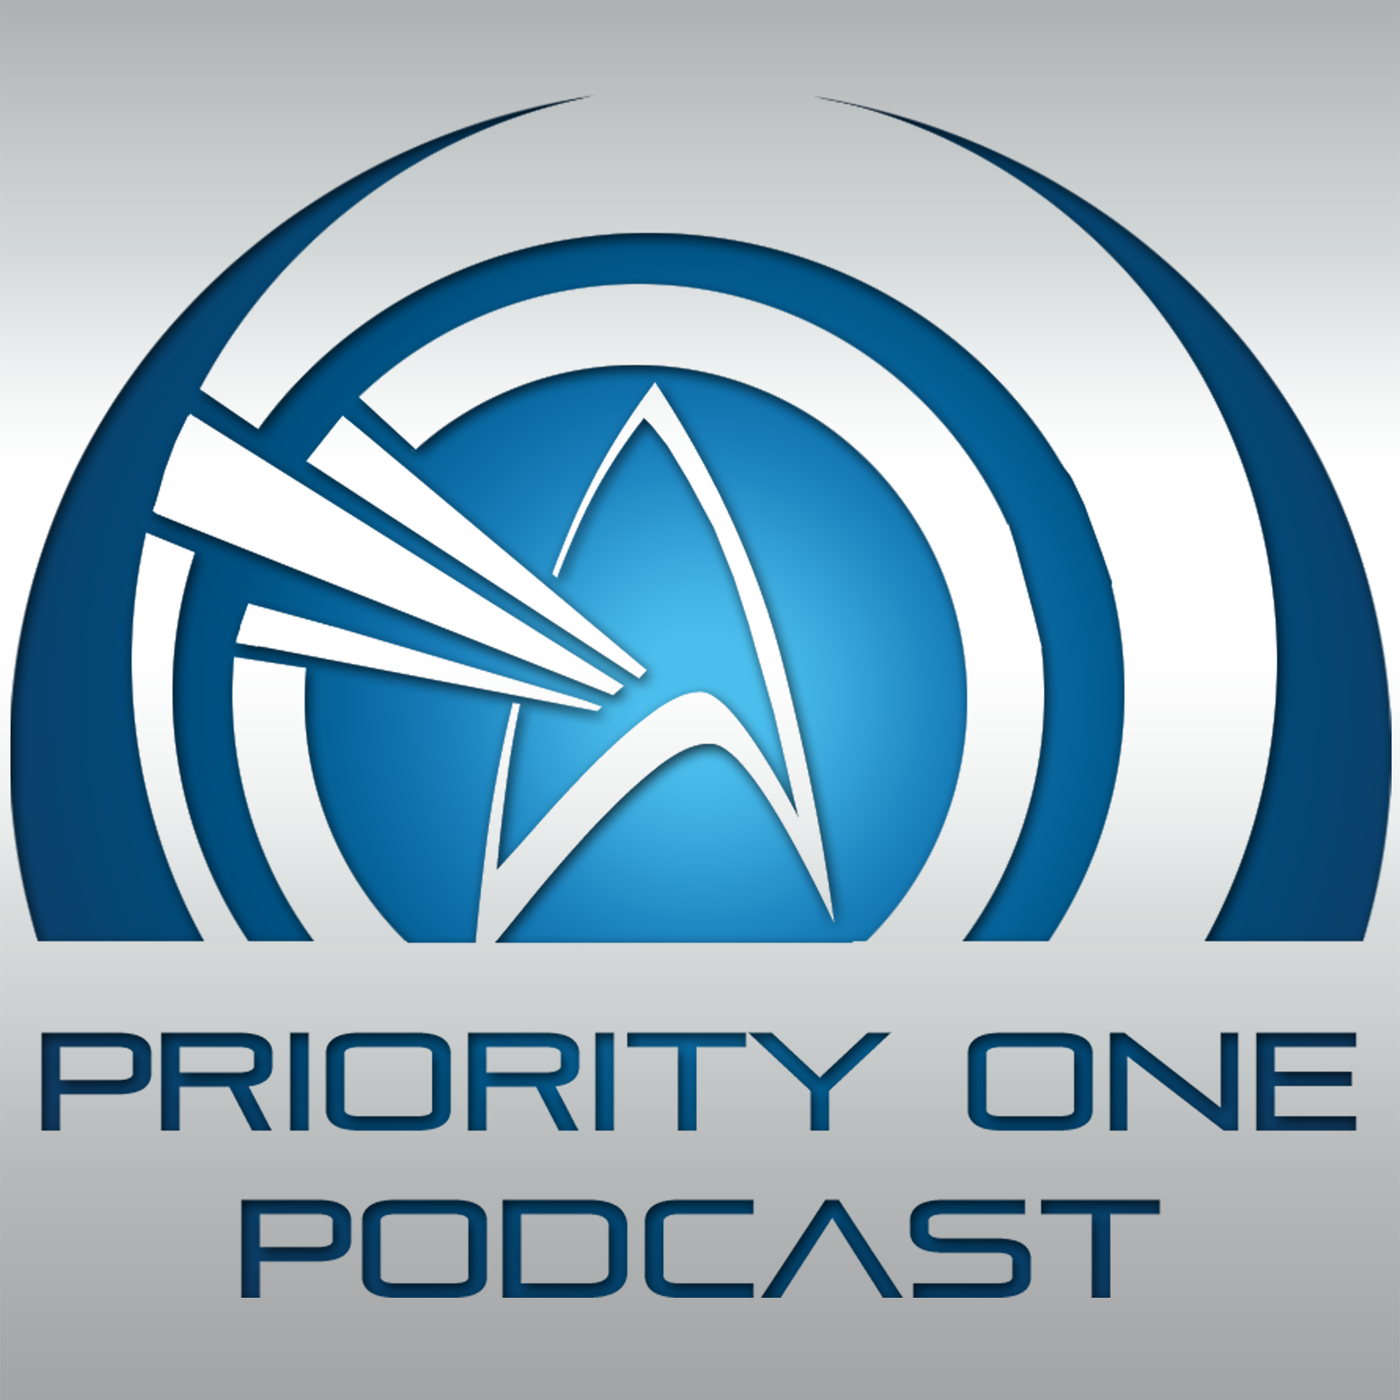 Priority One Podcast: A Star Trek News Show